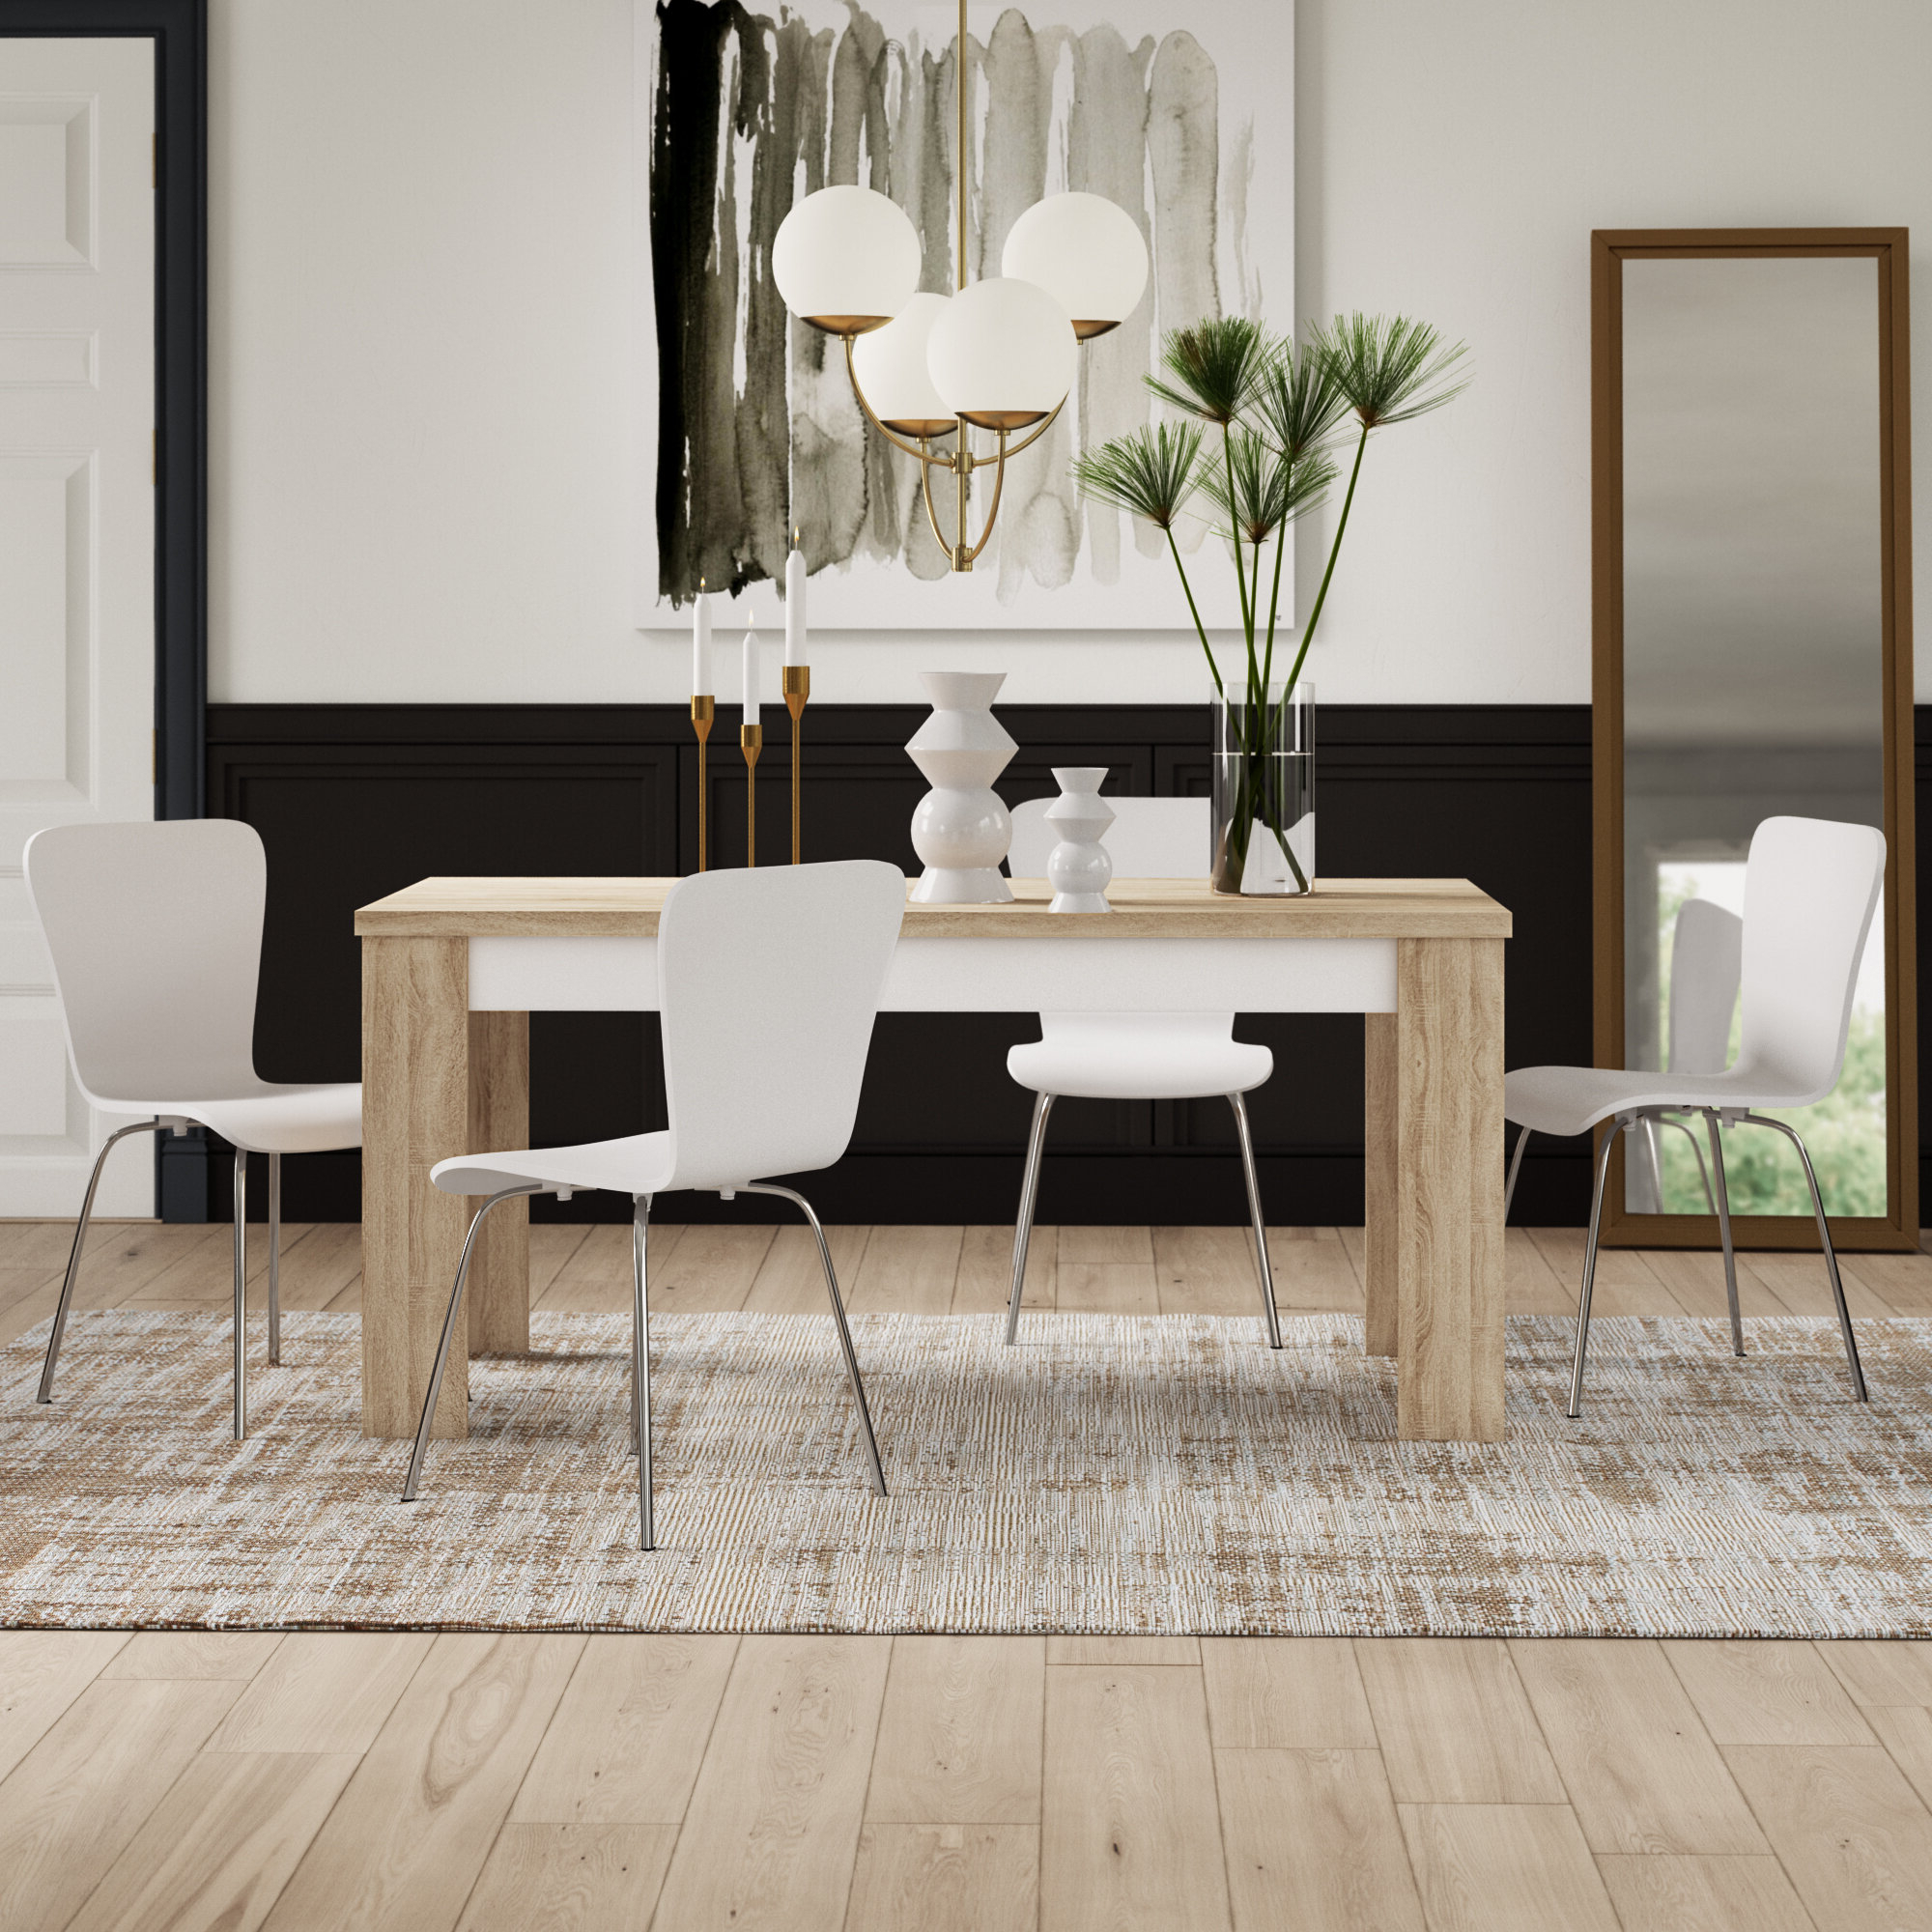 Maynard 5 Piece Dining Sets Throughout Most Recently Released Algedi 5 Piece Dining Set (View 5 of 20)